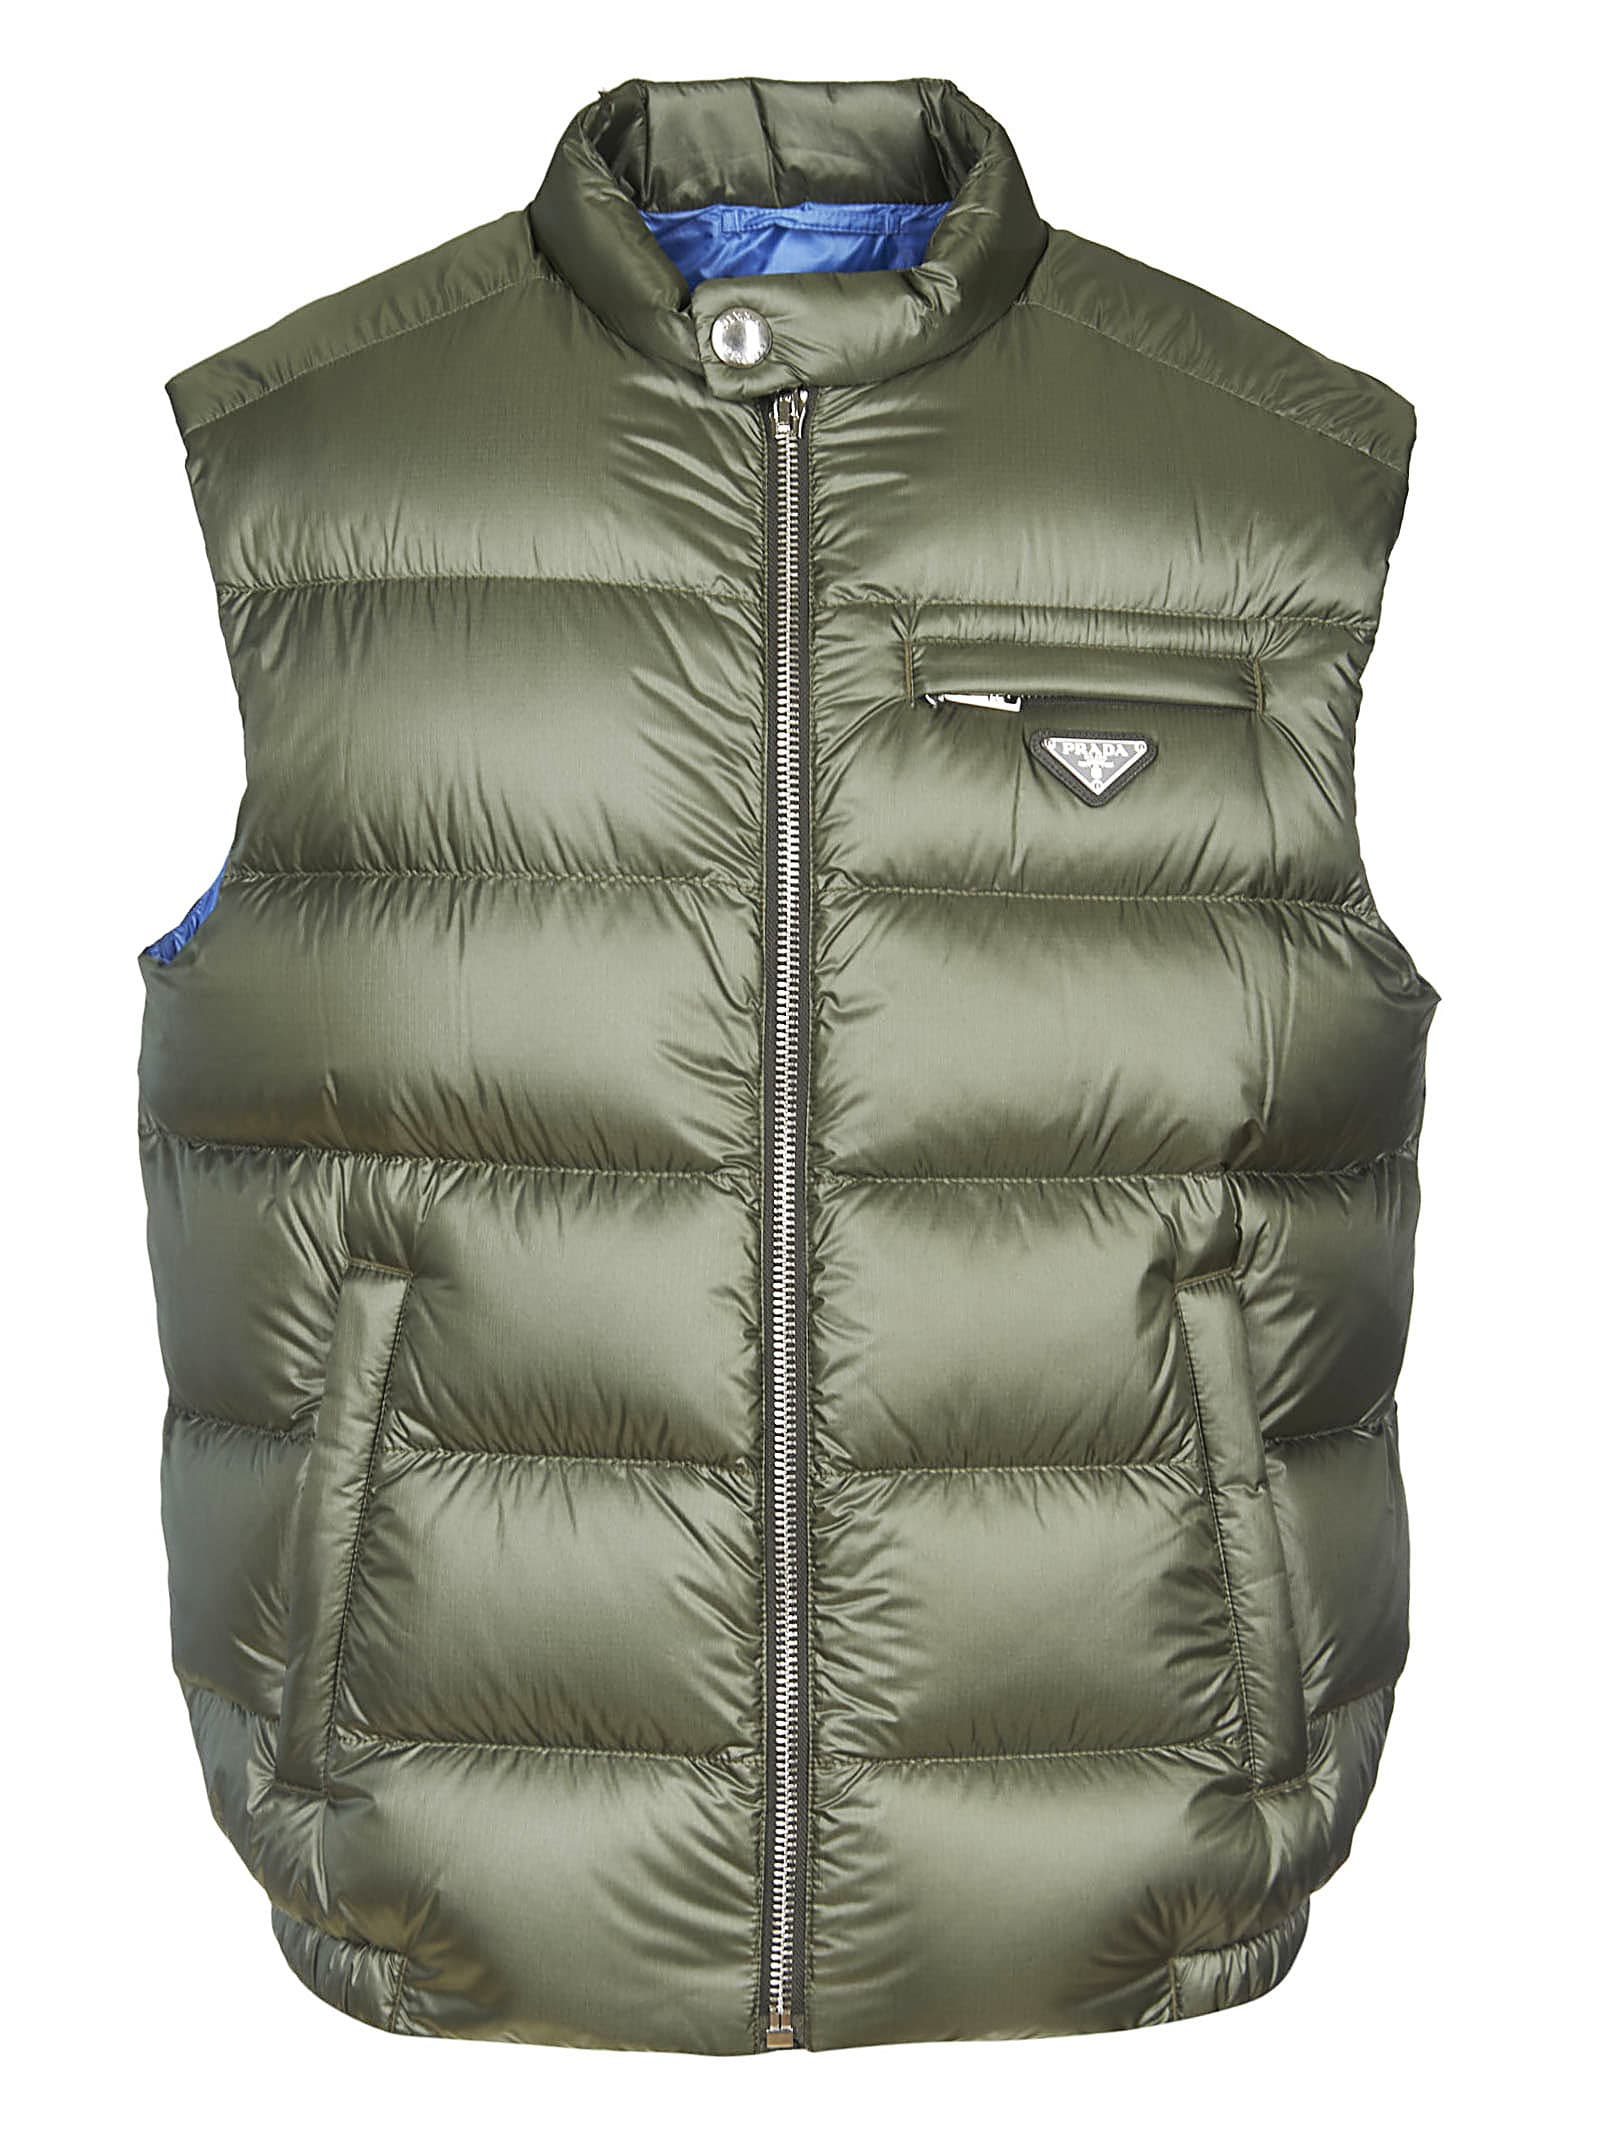 Ripstop Padded Gilet from PradaComposition: 100% Polyamide